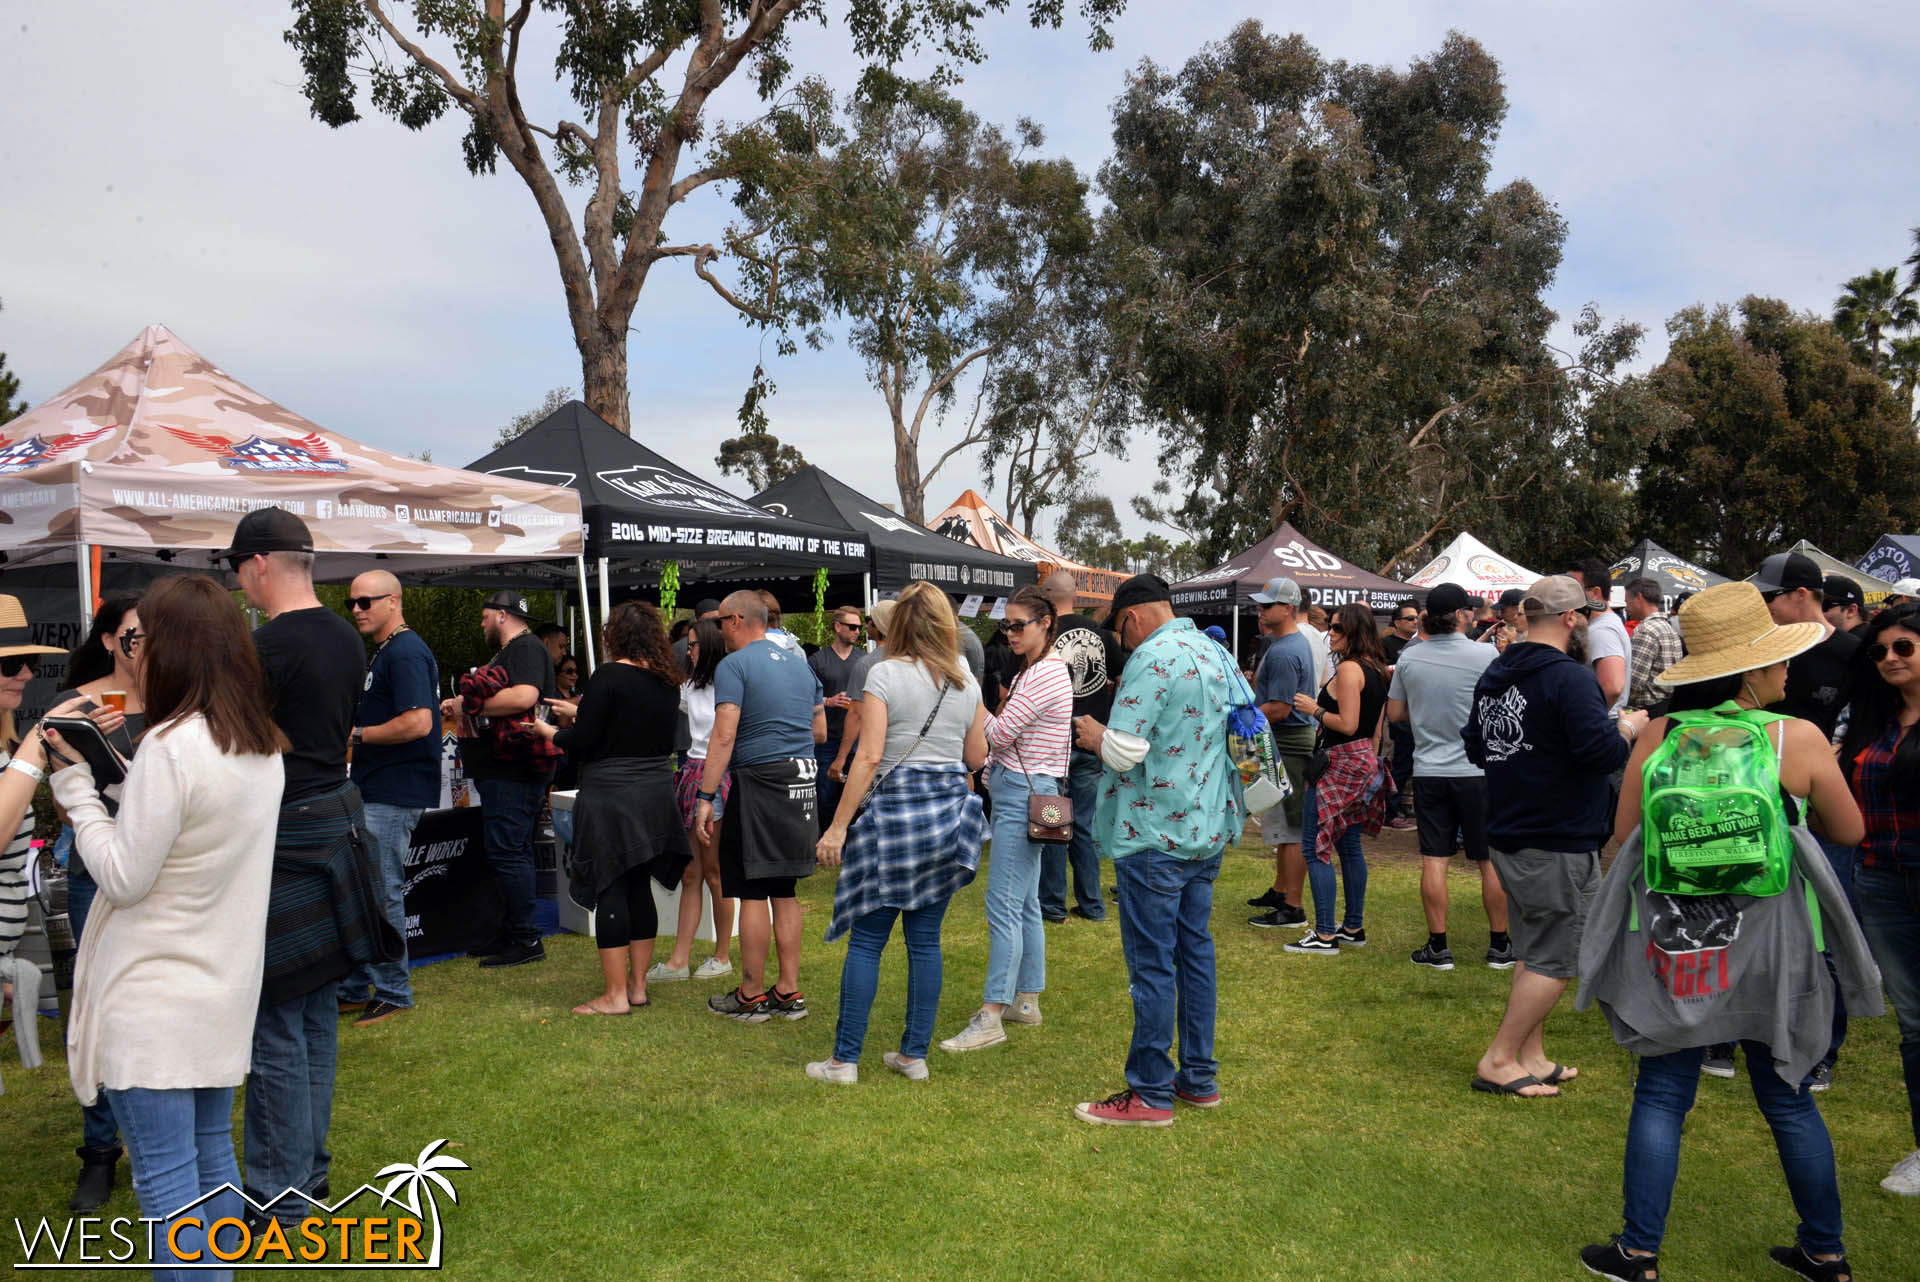 But things would get busier later on, especially over in the lawn area, where more beer vendors were distributed.